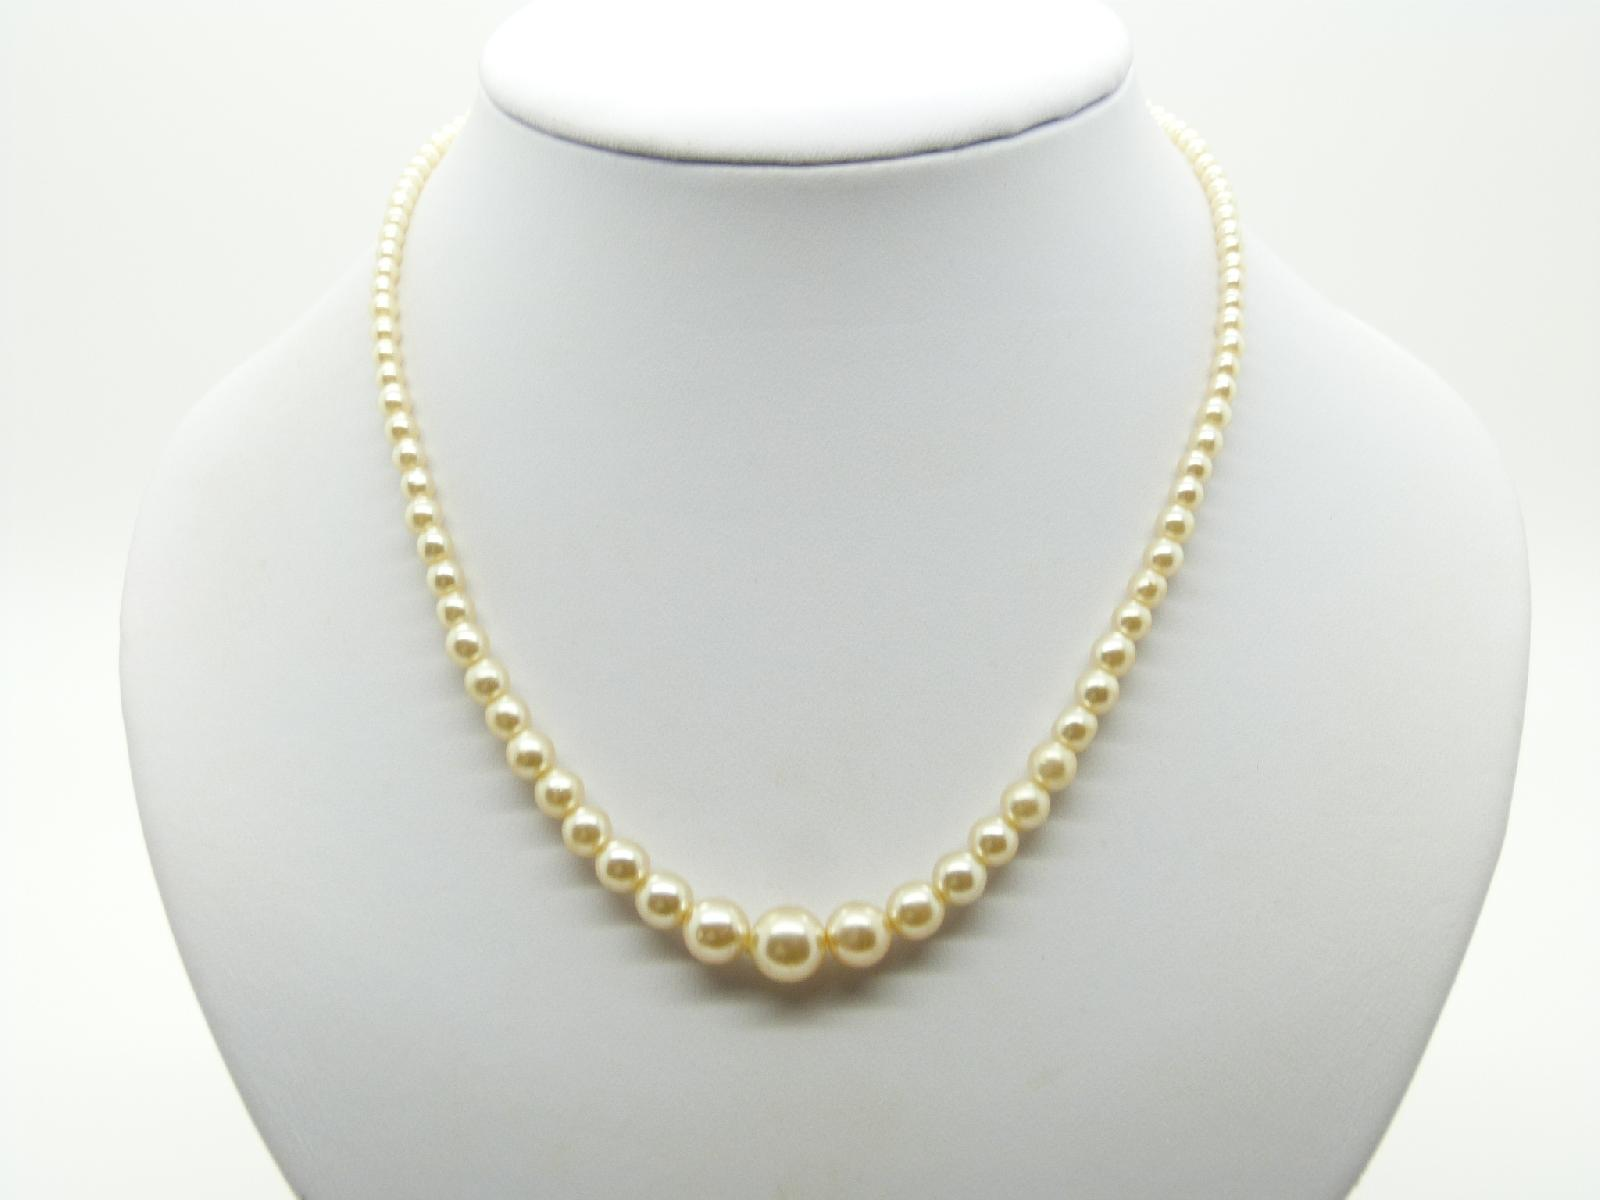 Vintage 30s Pretty Glass Faux Pearl Bead Graduating Necklace 65cms